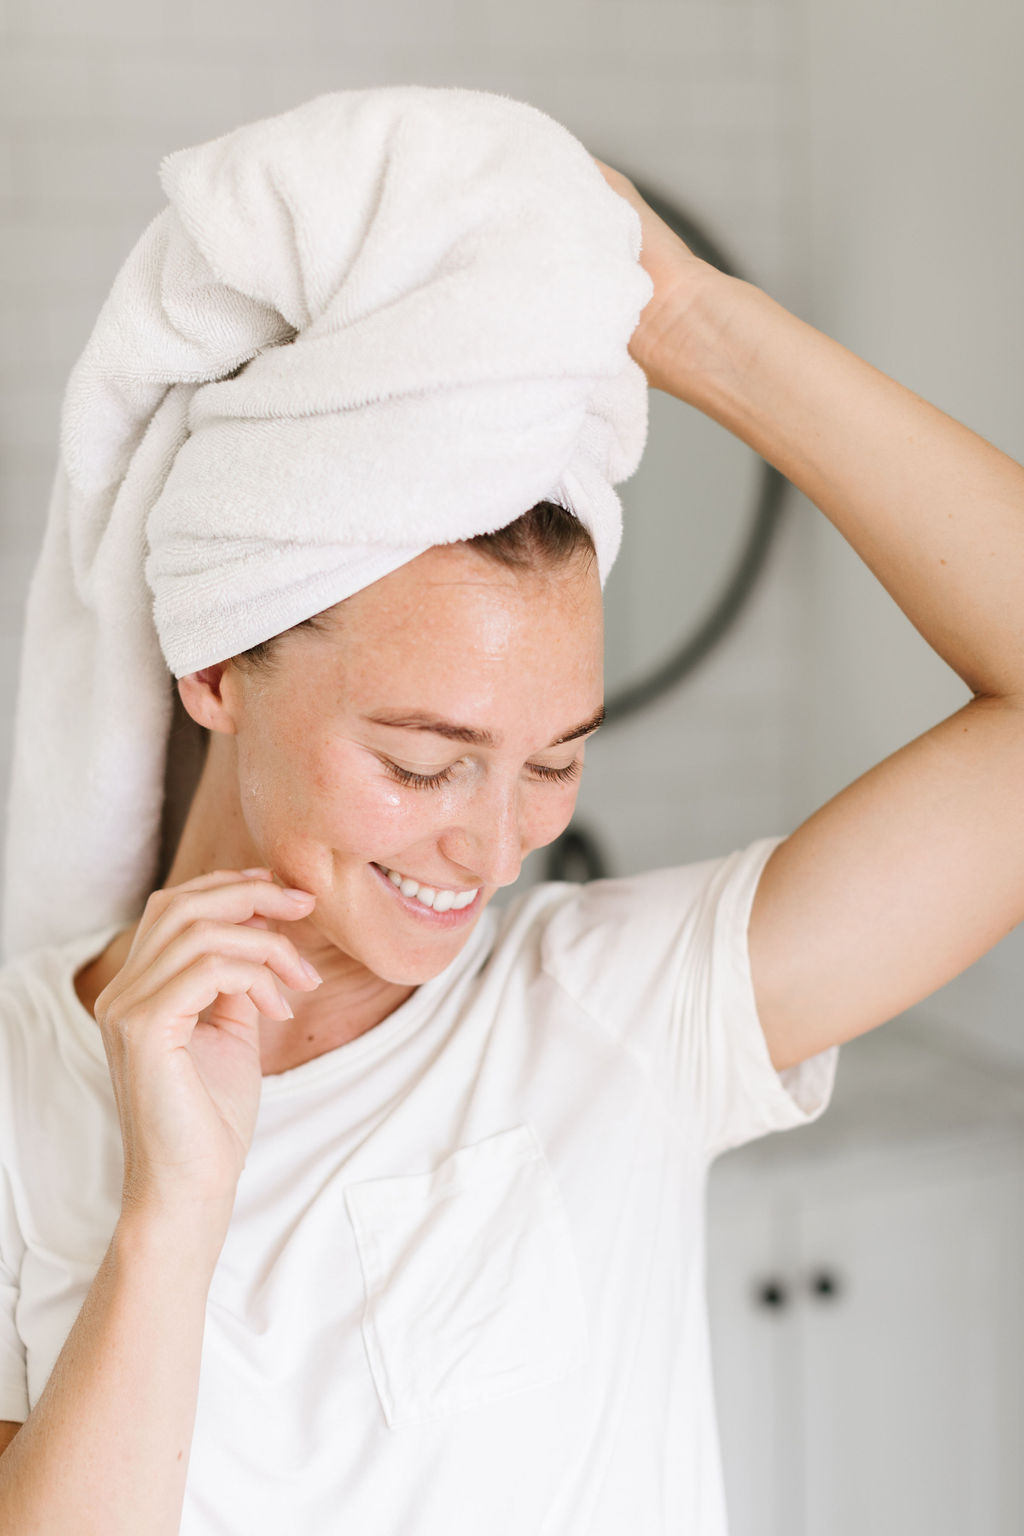 woman smiling with a towel wrapped around her head